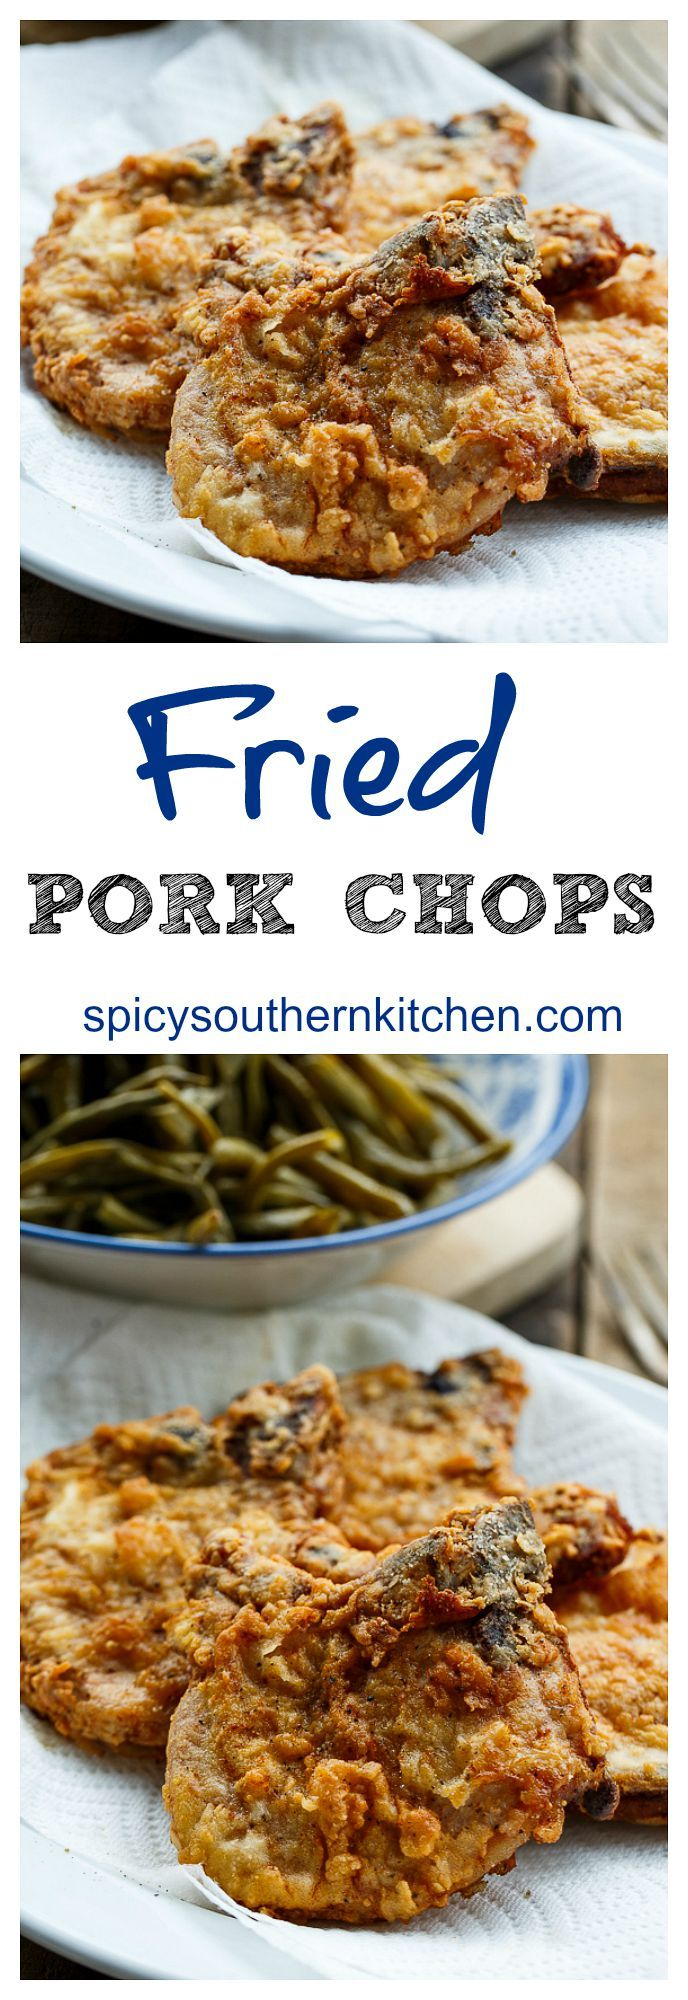 Southern Fried Pork Chops - so simple and so delicious!